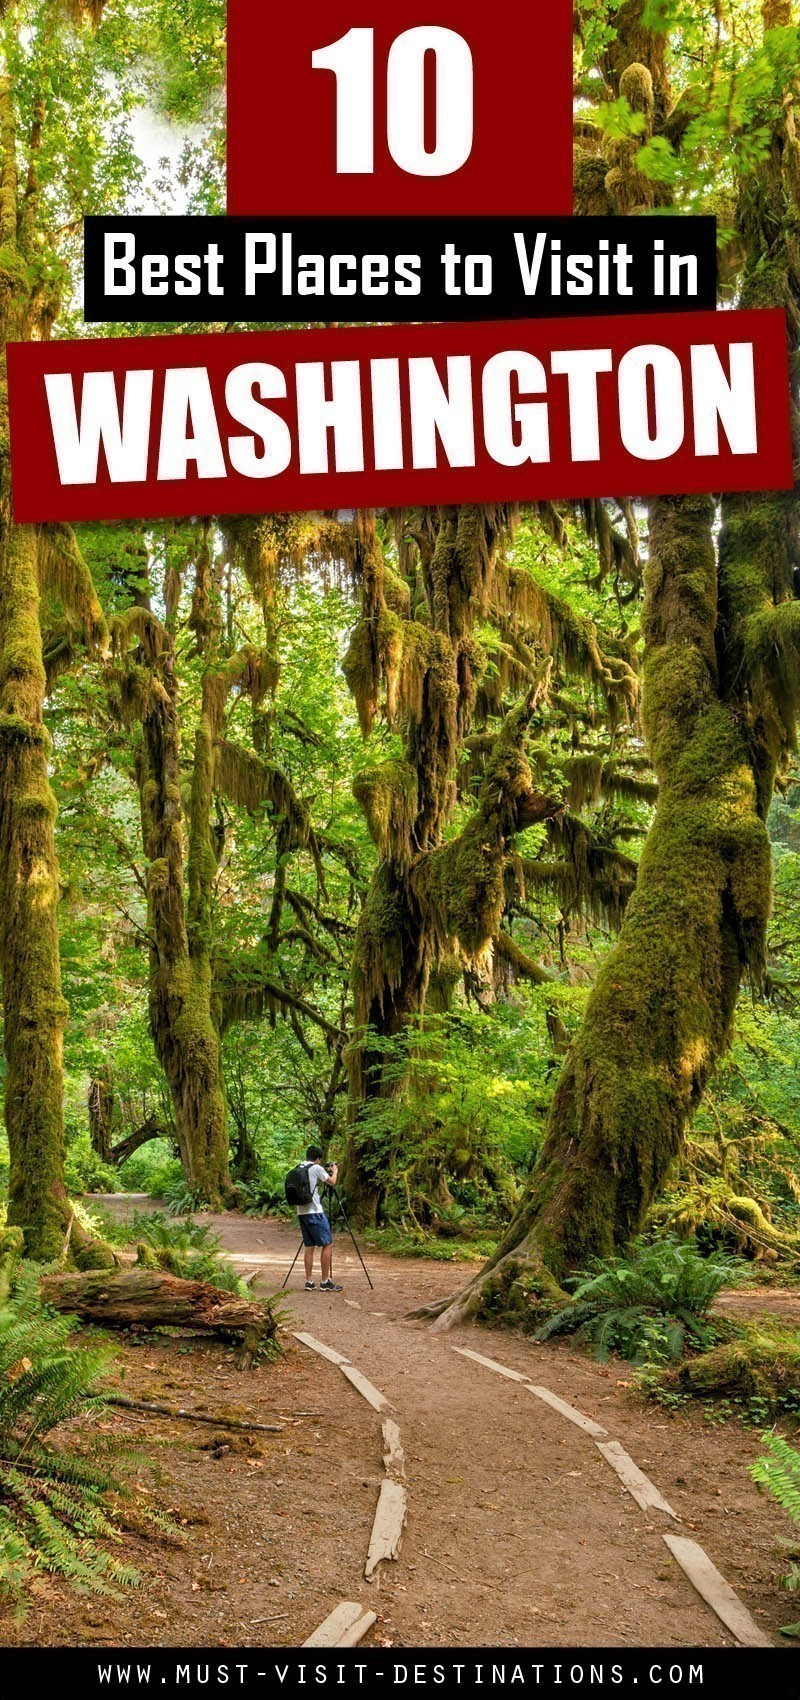 Discover the most popular tourist attractions to visit in Washington. Here is an overview of the TOP 10 Best Places to Visit in Washington. #travel